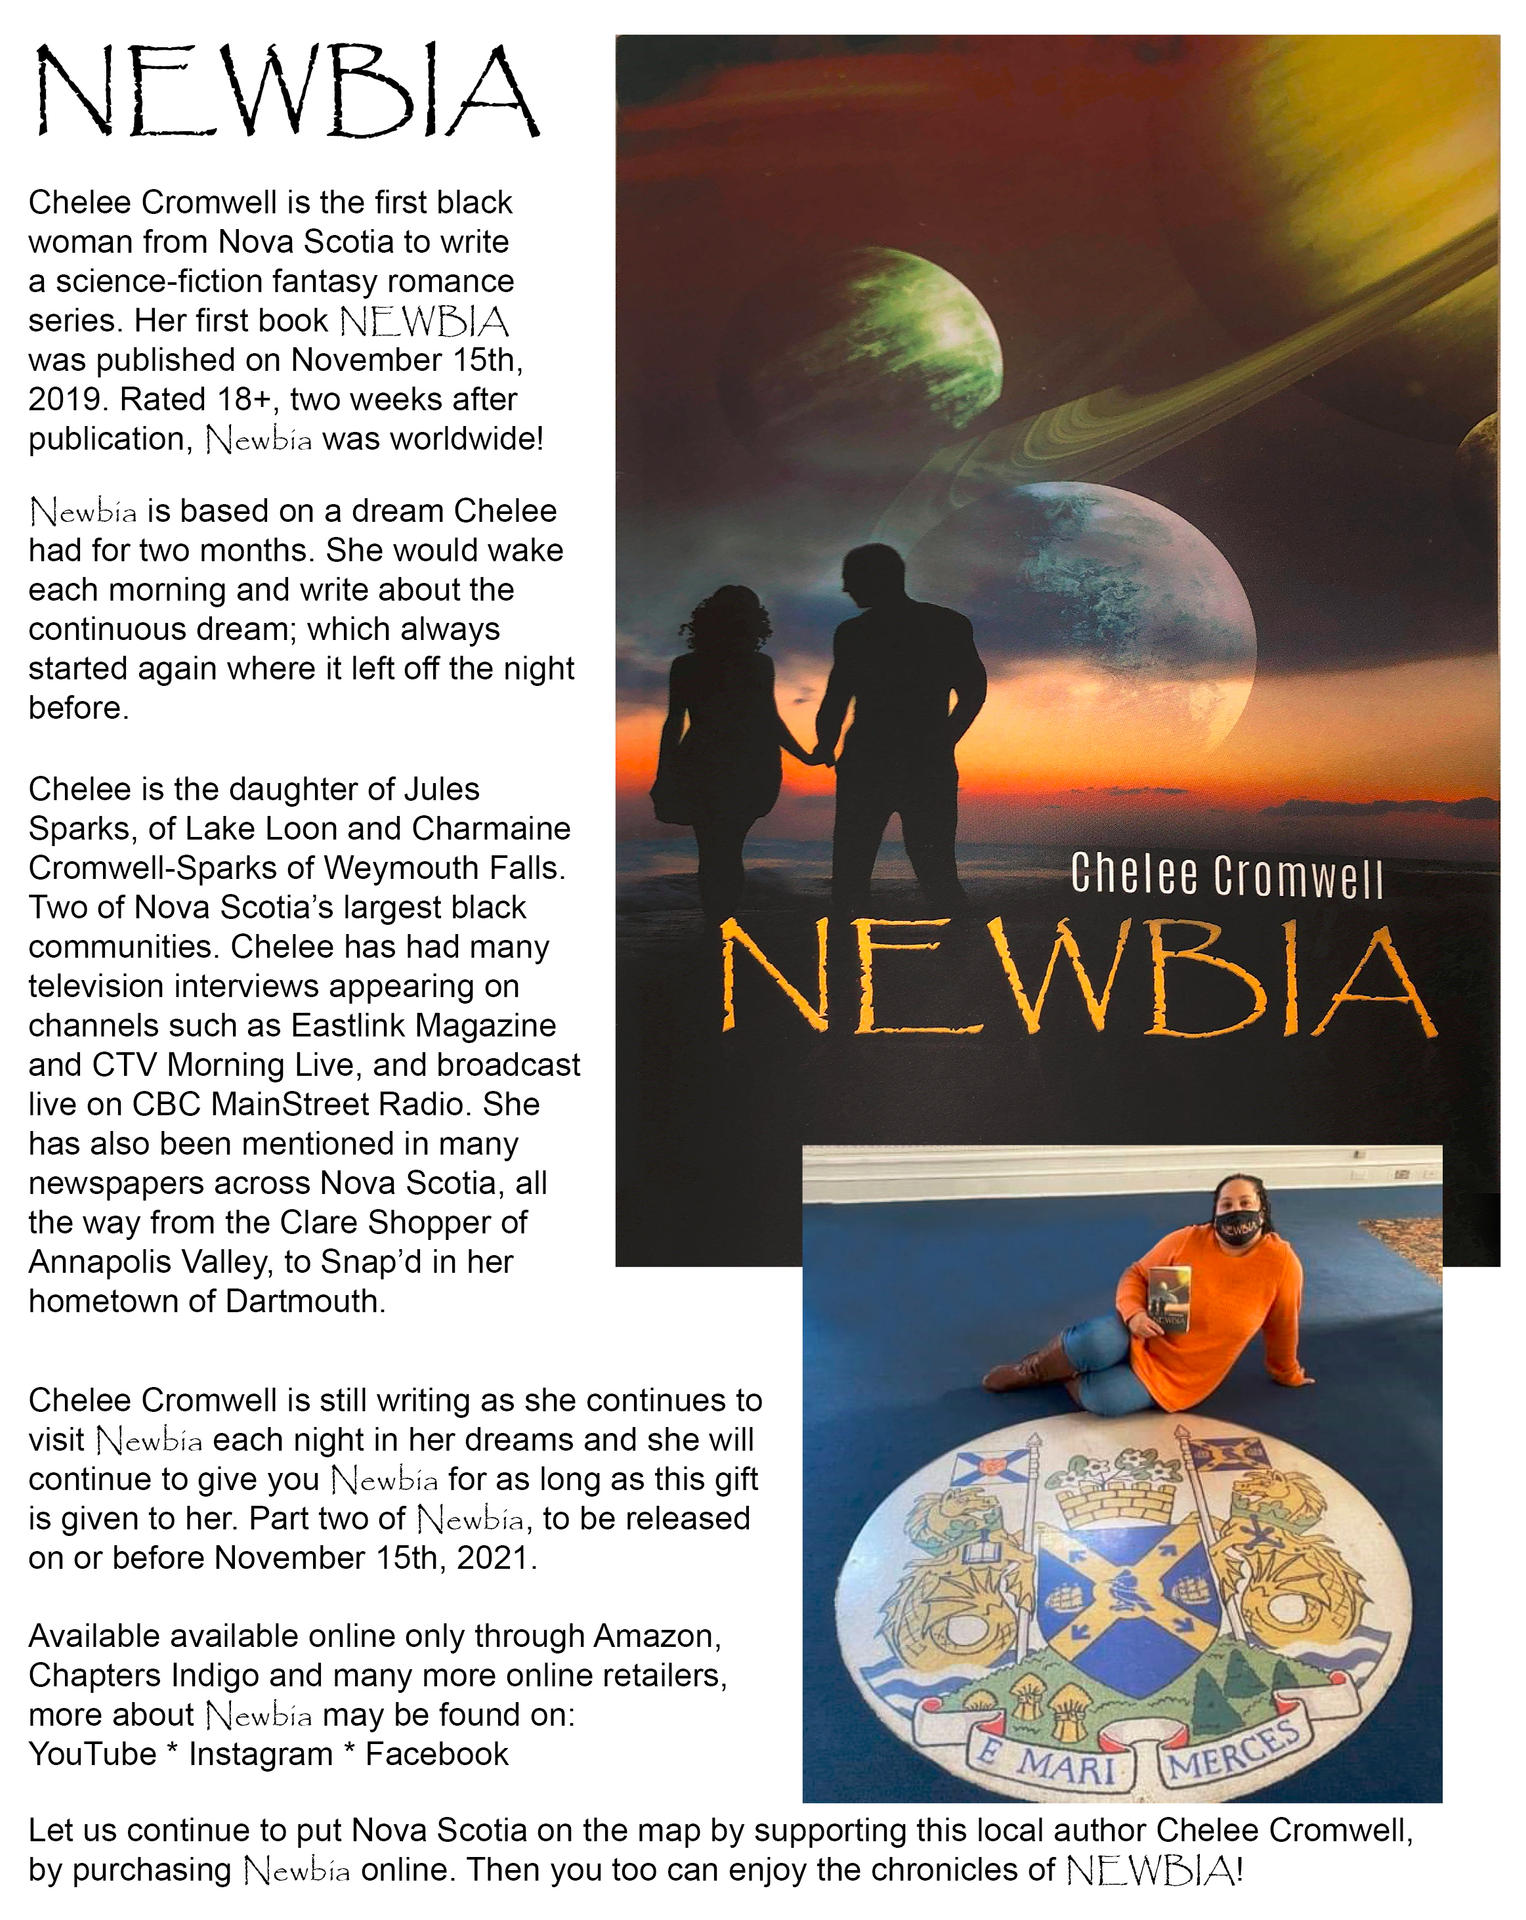 Newbia by Chelee Comwell